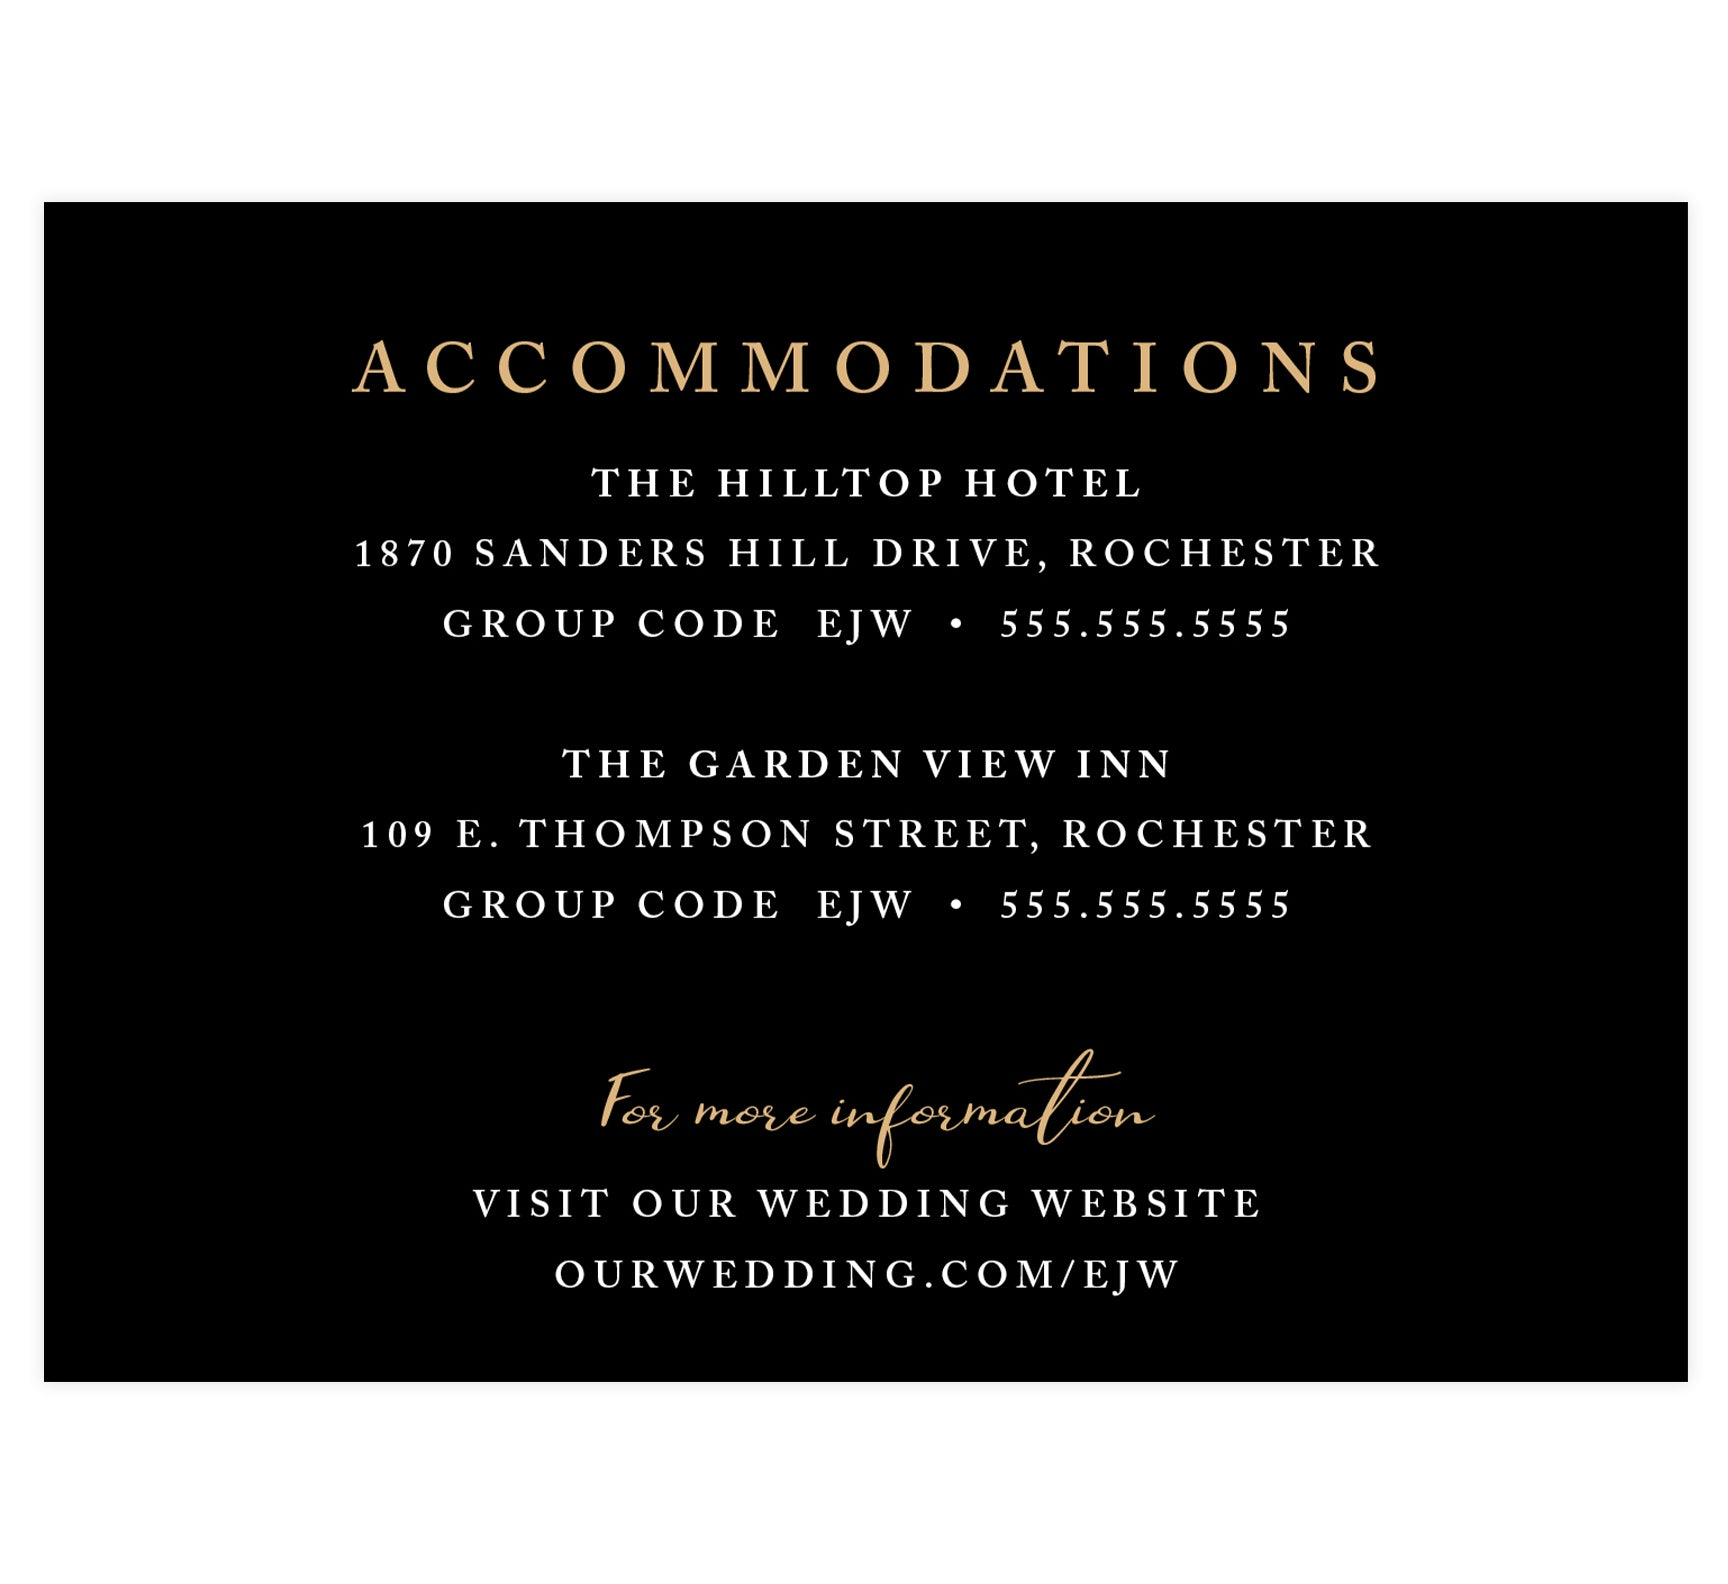 Succulent Frame Wedding accommodations/detail card; black background with white and gold text